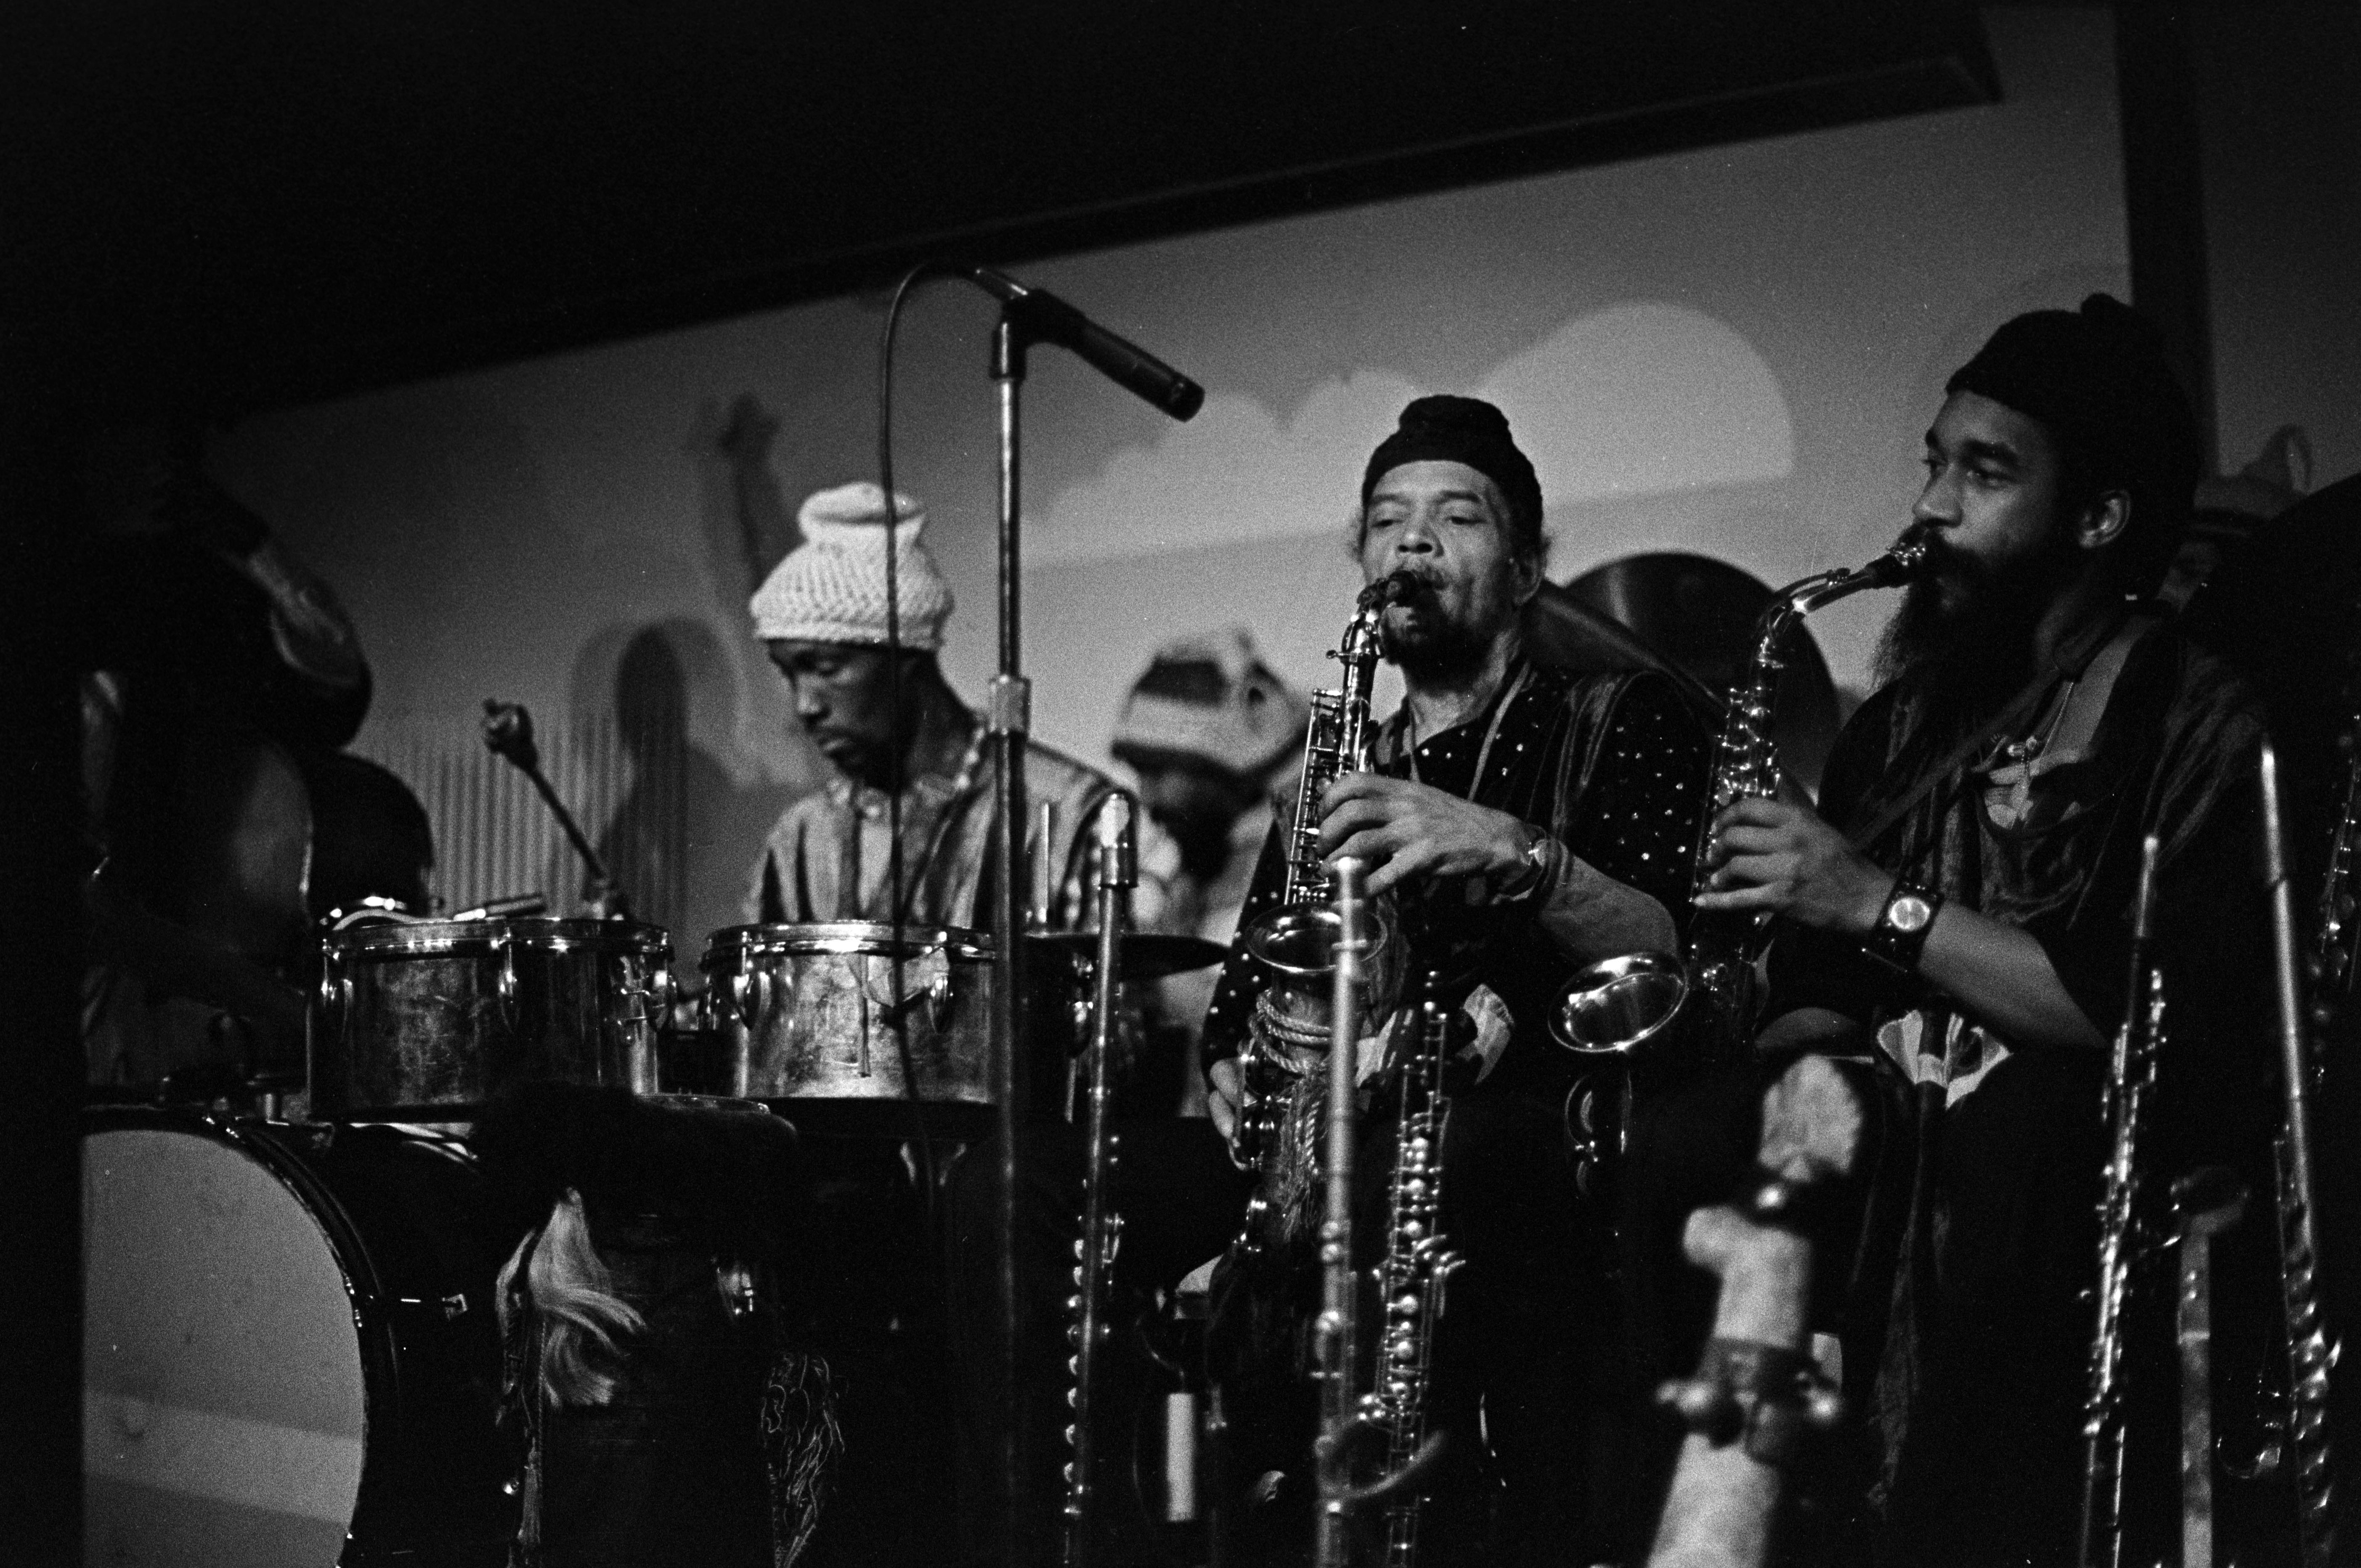 Marshall Allen, left, and Danny Davis Playing Alto with The Sun Ra Arkestra, circa 1977 image